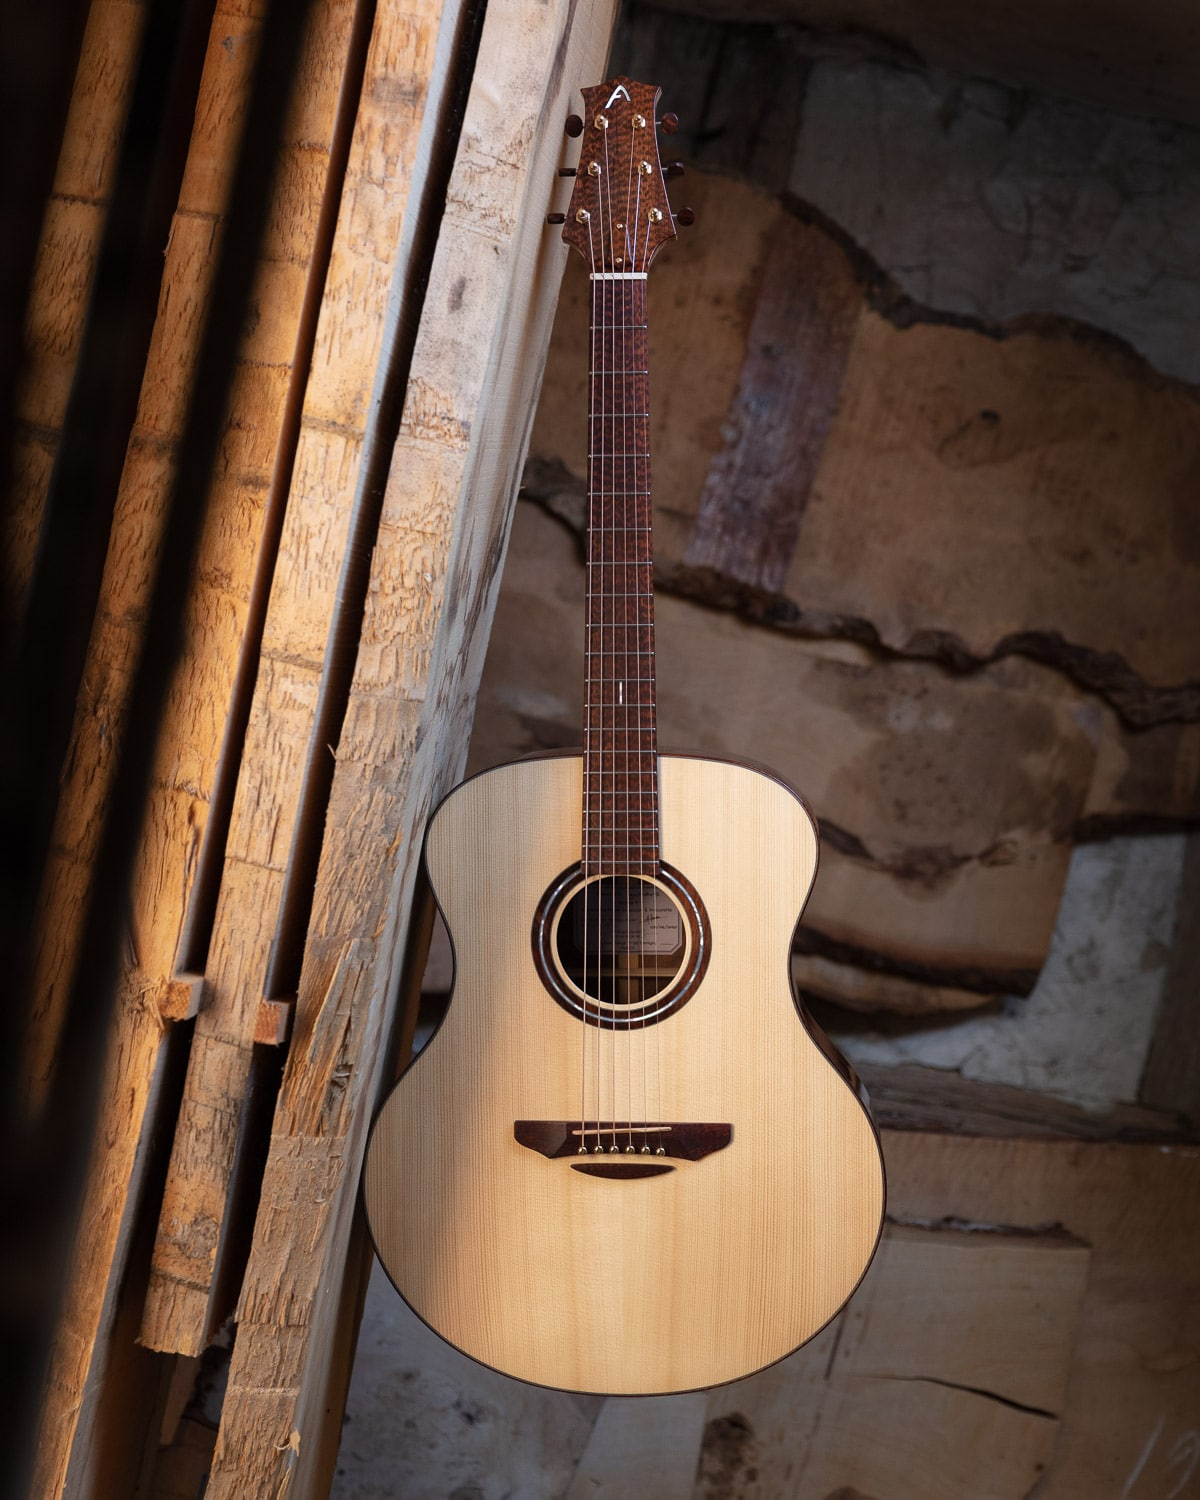 Guitare acoustique - Guitare folk - Table en épicéa